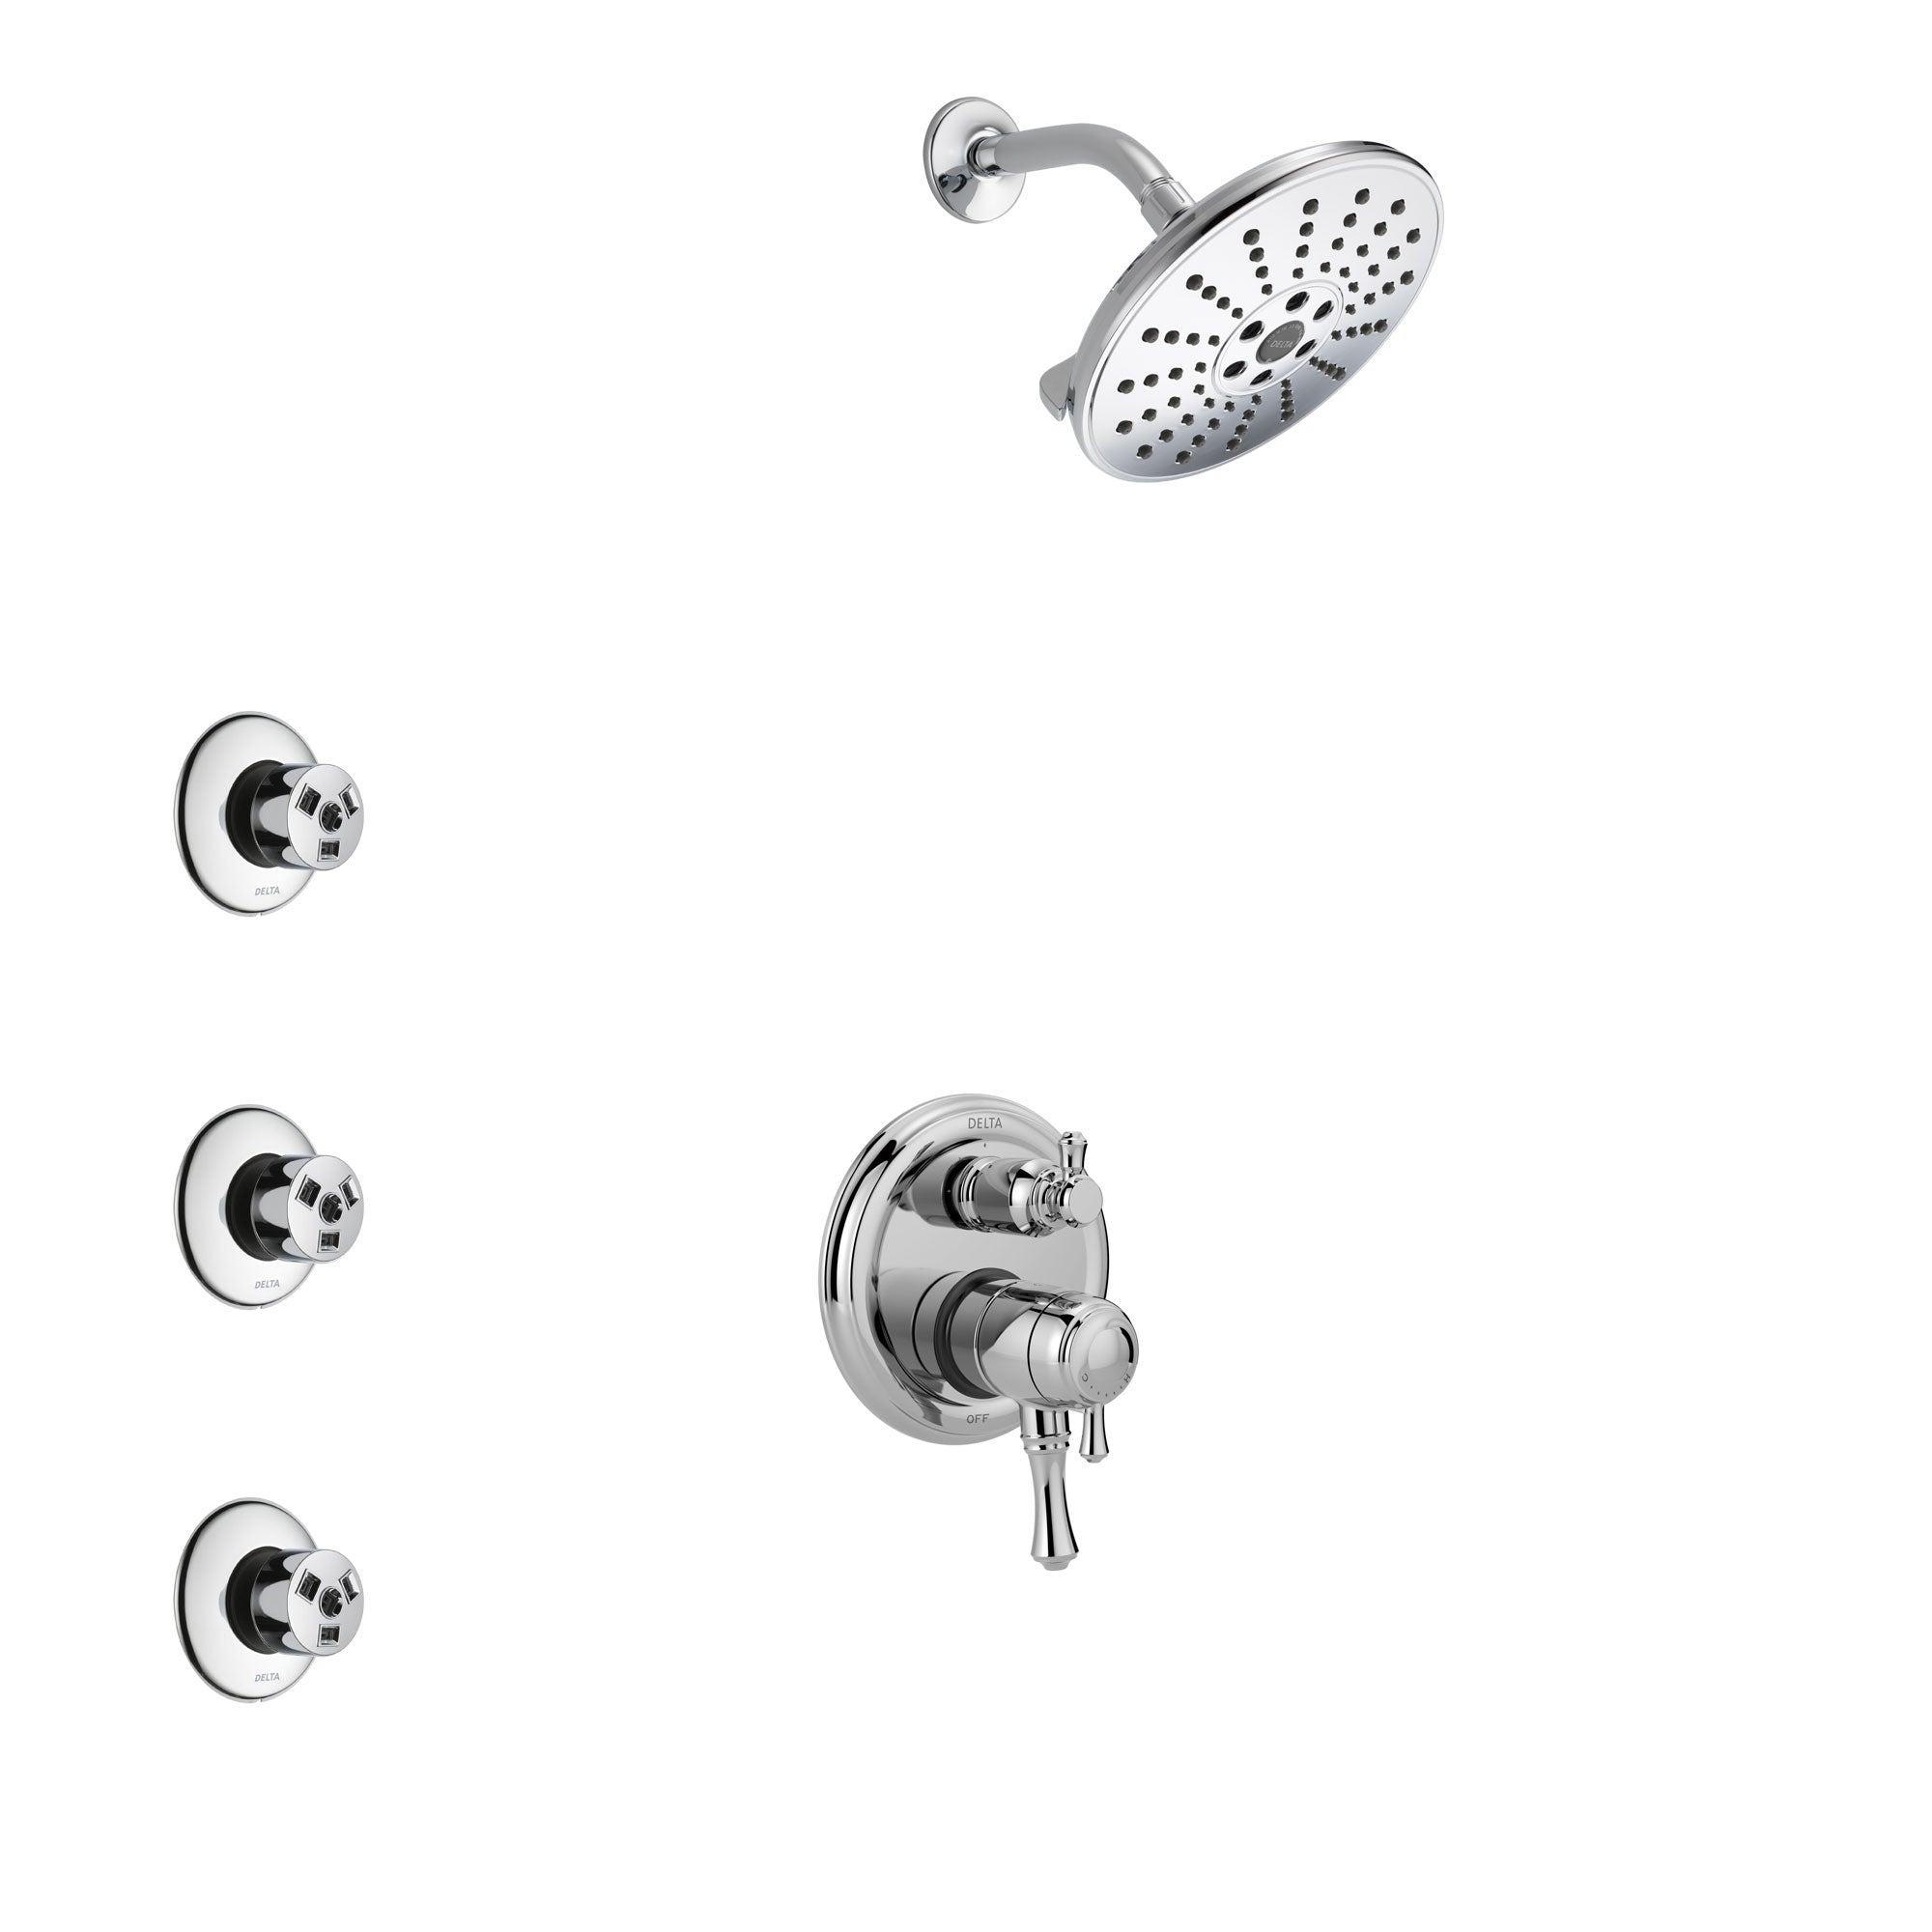 Delta Cassidy Chrome Finish Shower System with Dual Control Handle, Integrated 3-Setting Diverter, Showerhead, and 3 Body Sprays SS278977